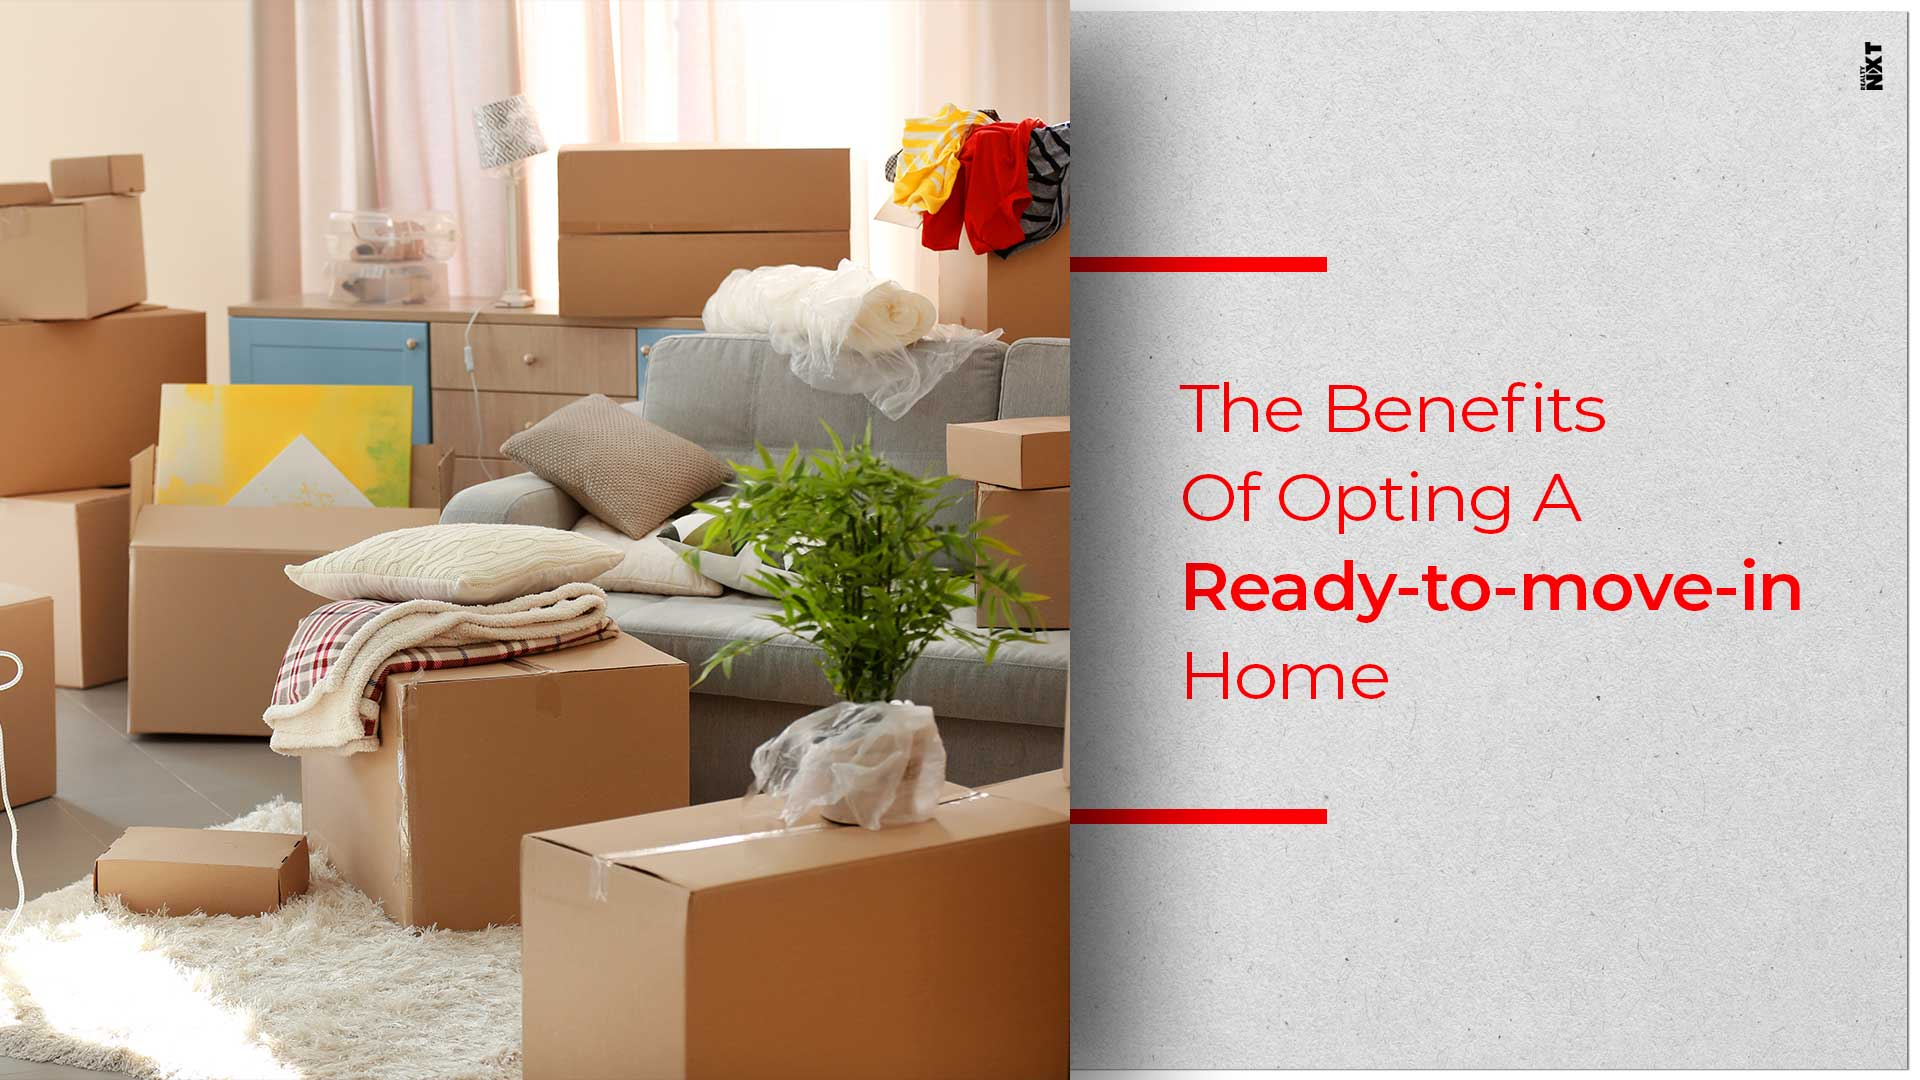 Ready-to-move Or Under-construction Home? Which One To Choose?